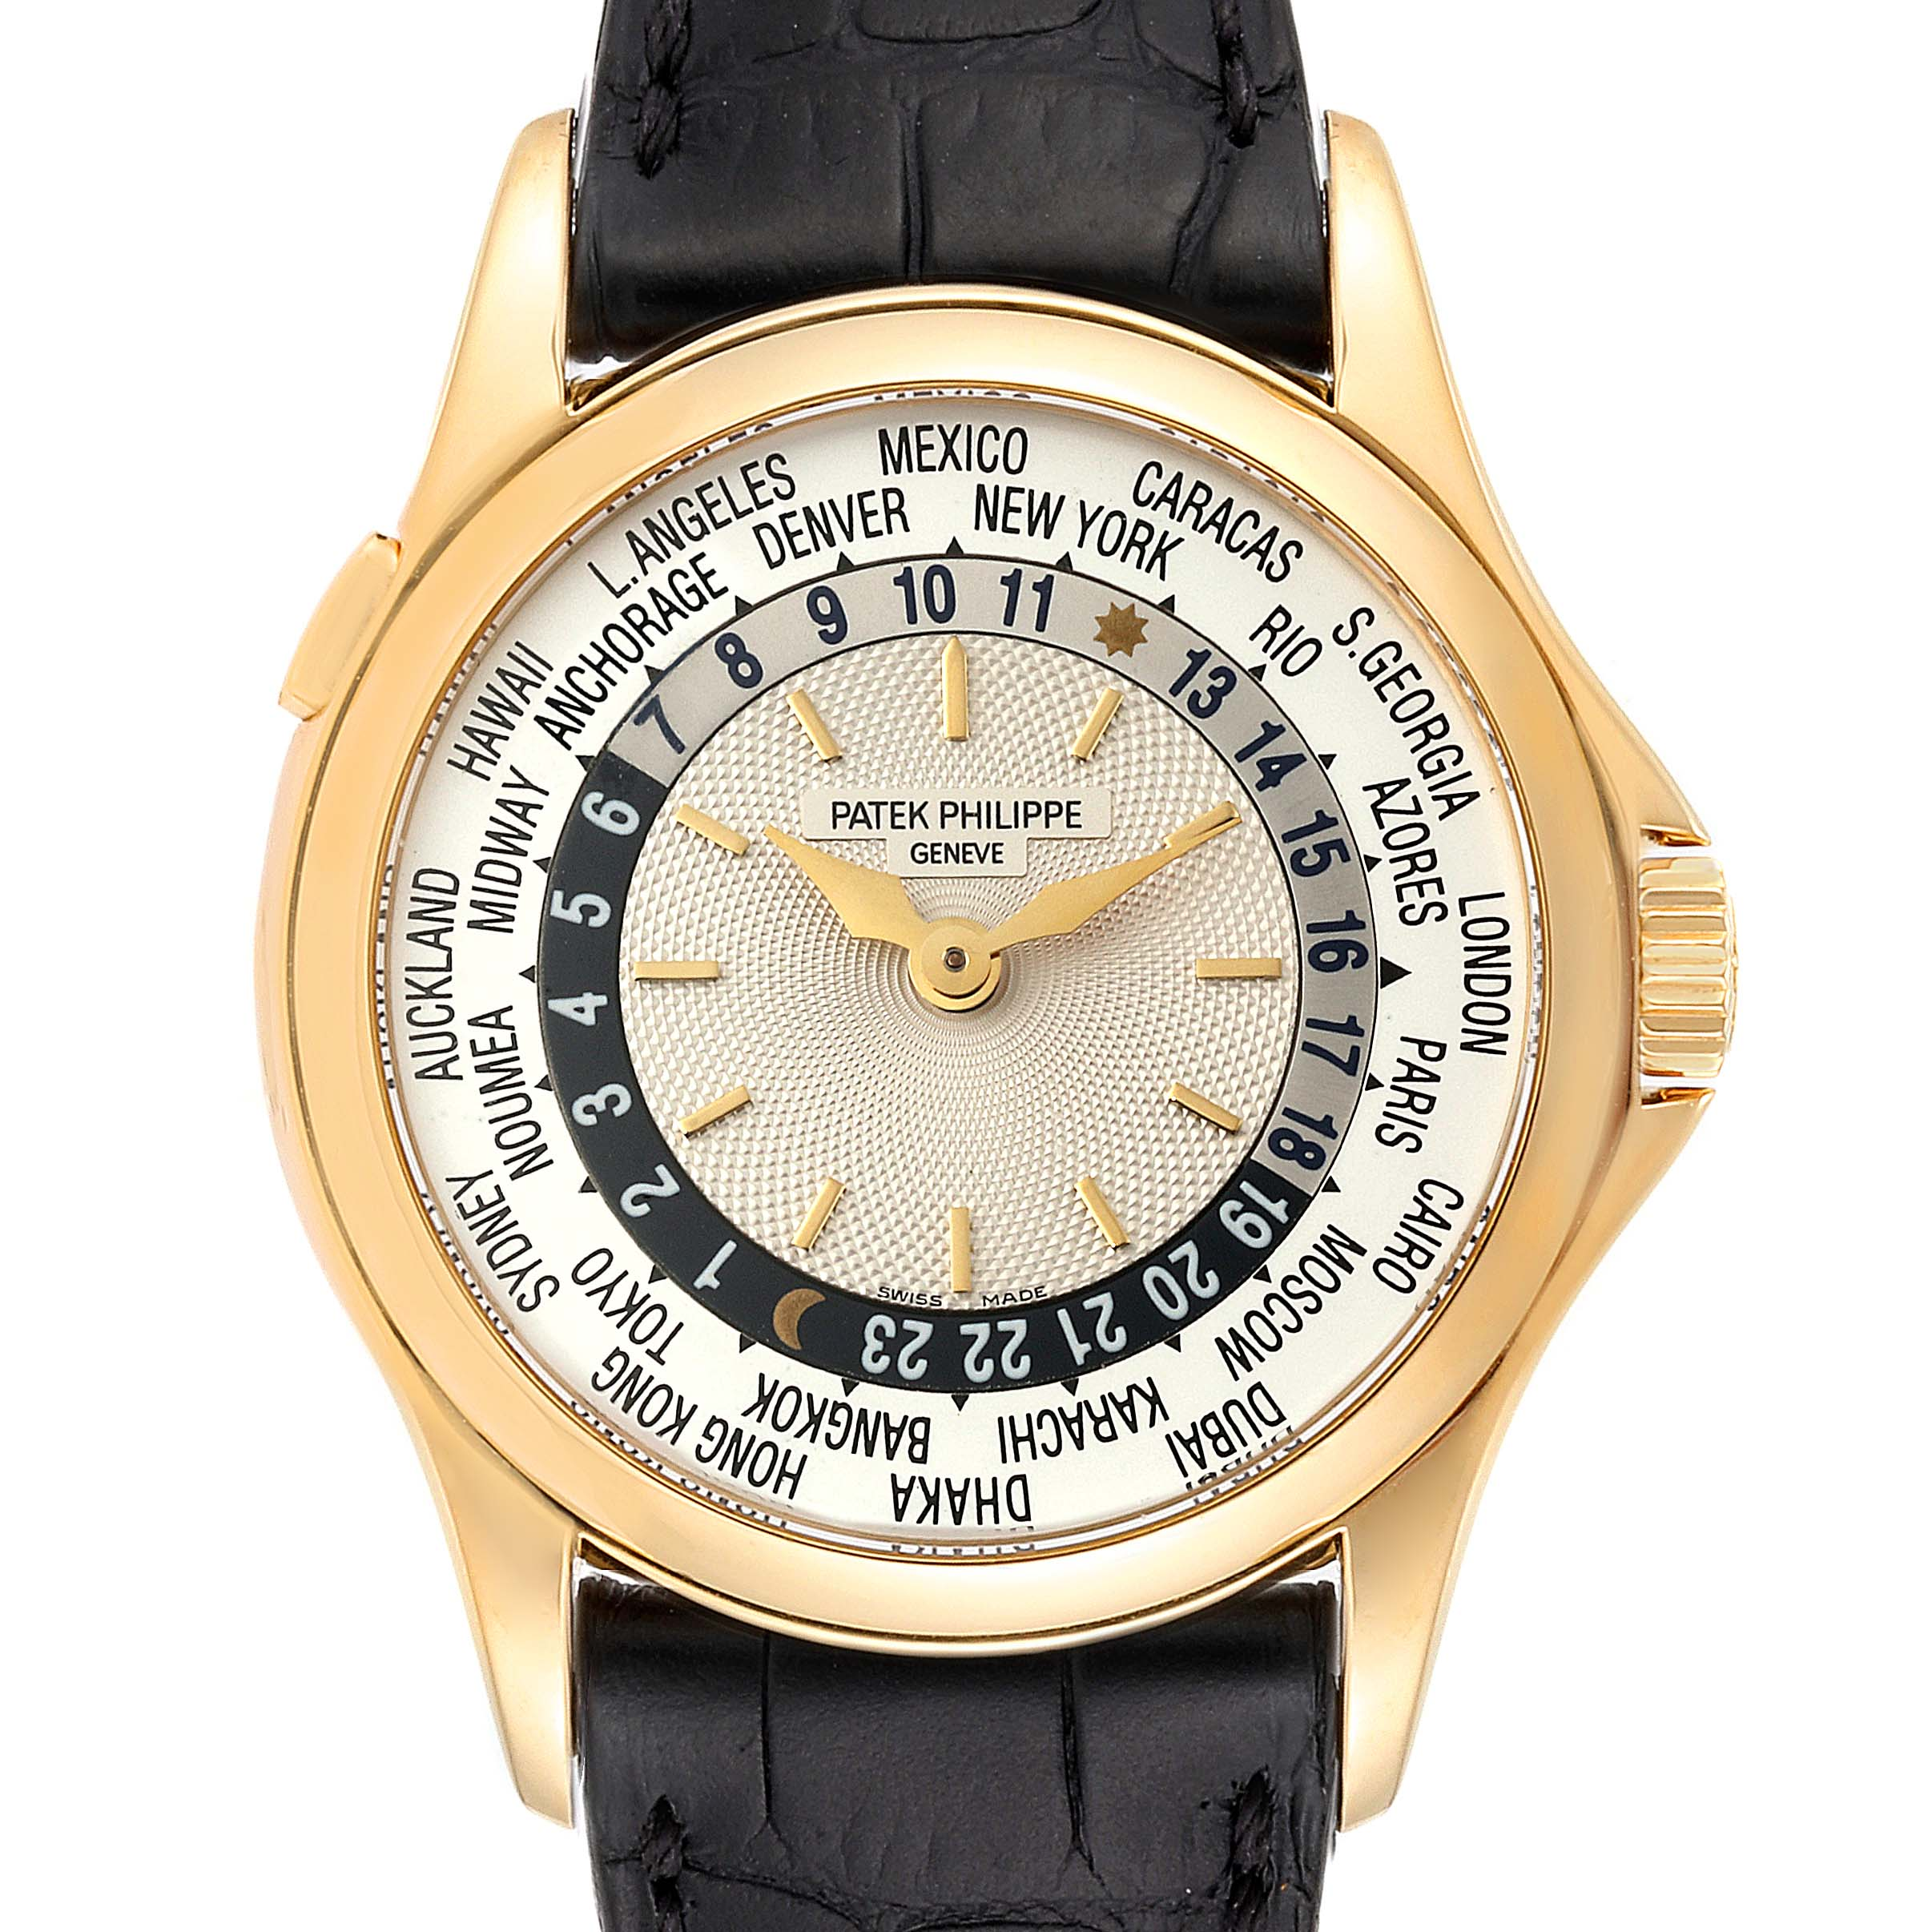 Photo of Patek Philippe World Time Complications Yellow Gold Watch 5110 Box Papers PARTIAL PAYMENT